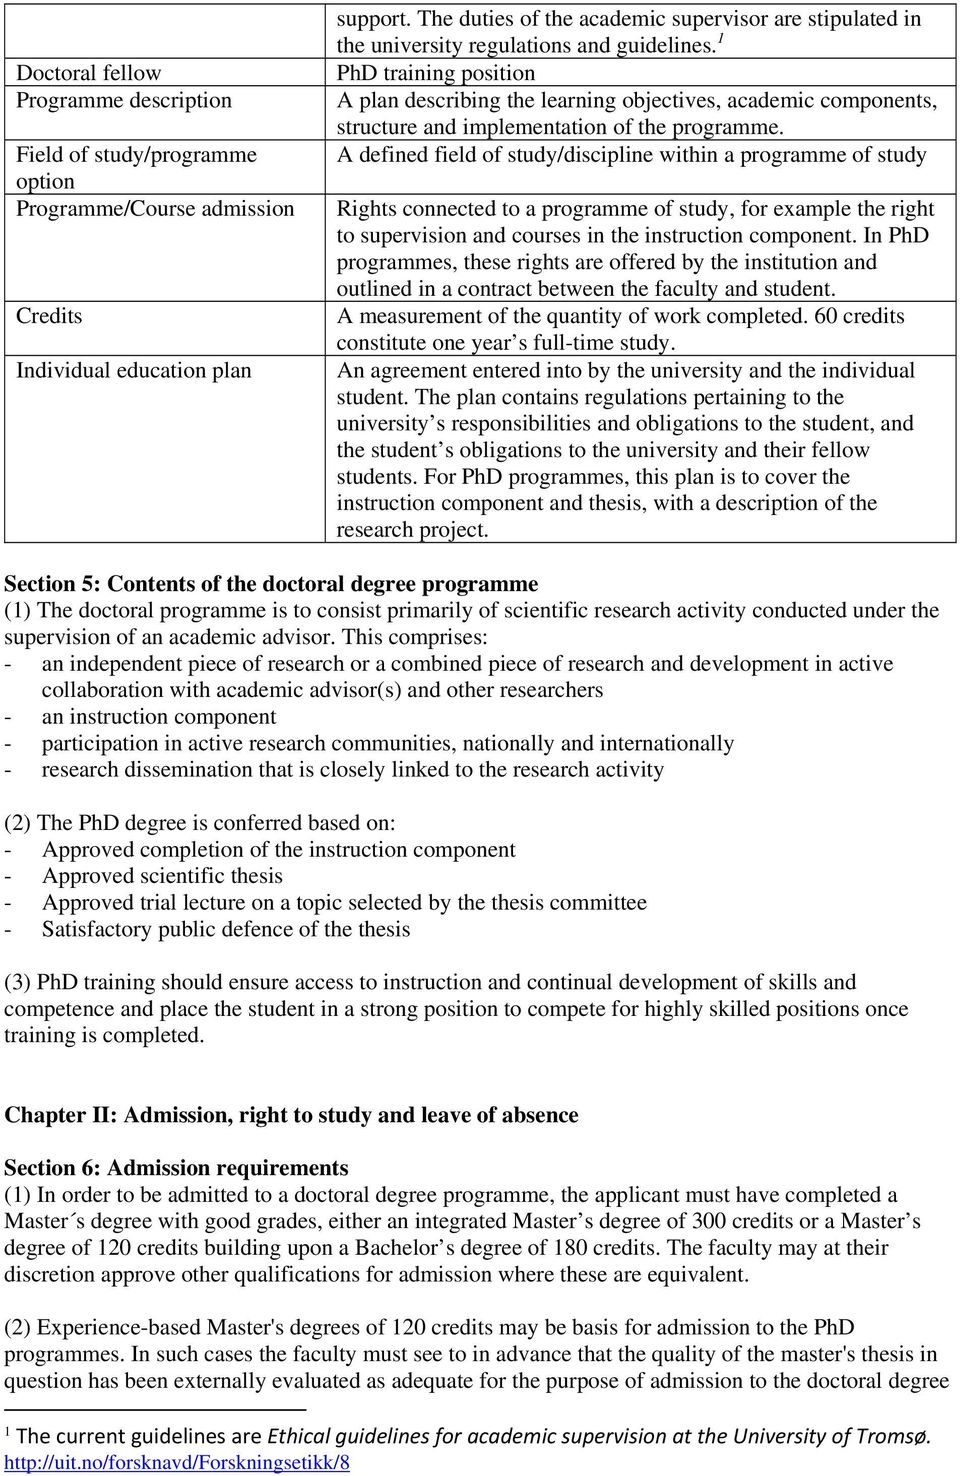 1 PhD training position A plan describing the learning objectives, academic components, structure and implementation of the programme.